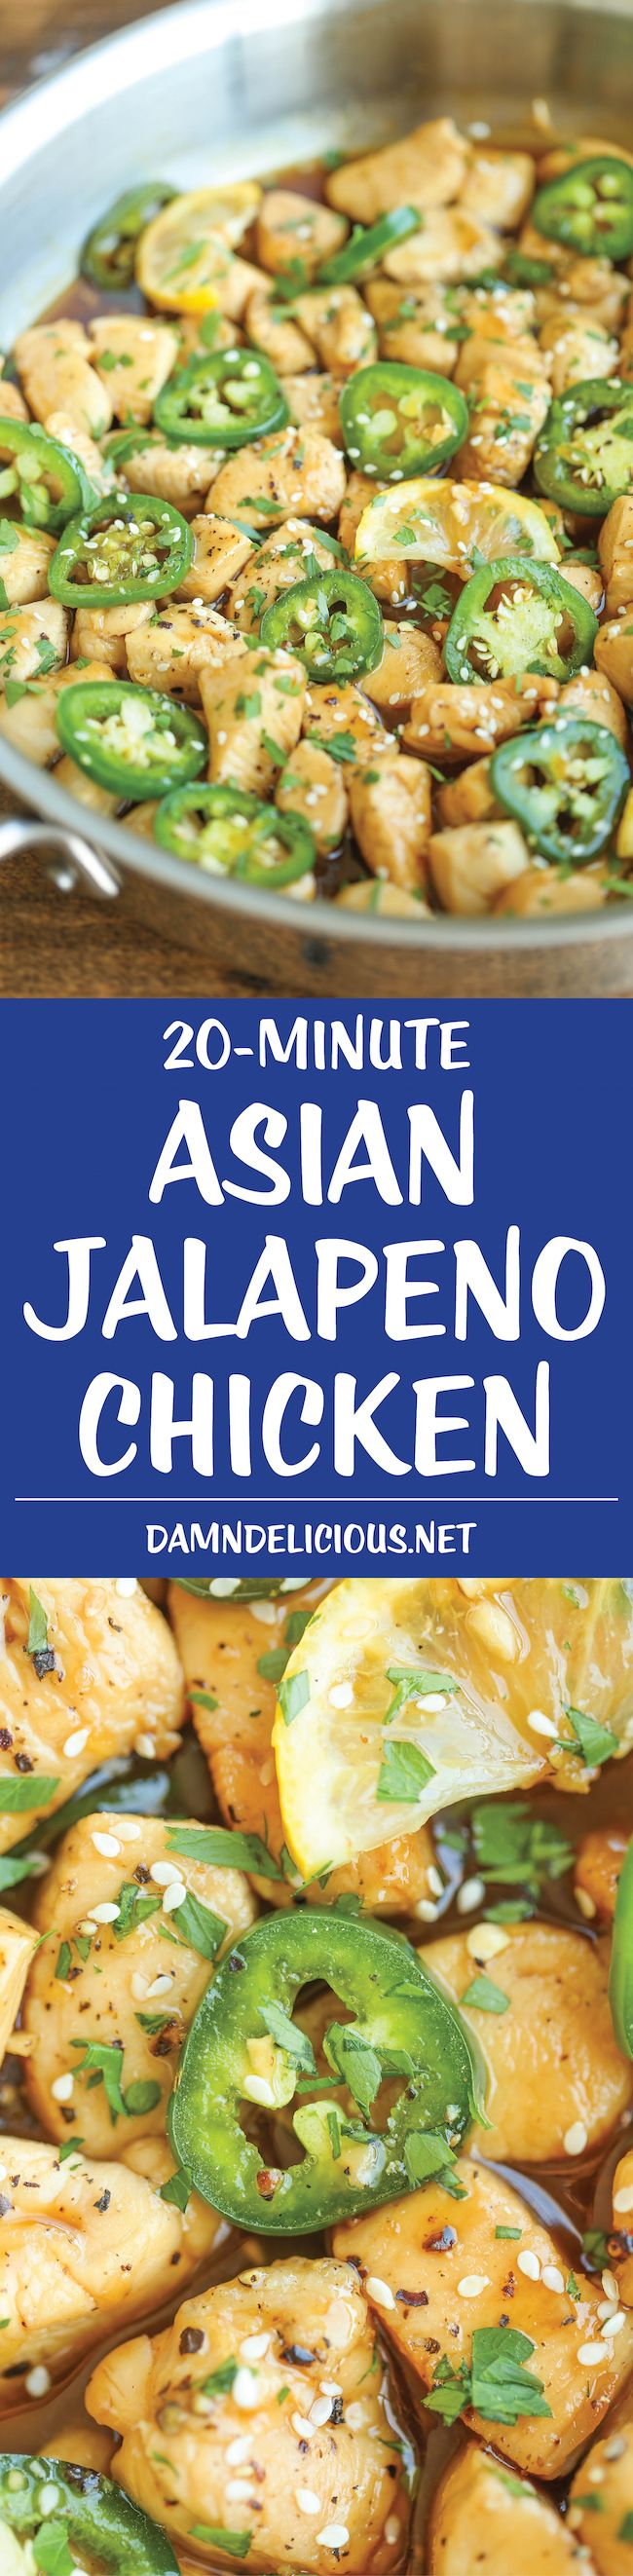 Asian Jalapeno Chicken - Sweet and savory perfection in this quick and easy 20 min meal from start to finish. Better than take-out and so much healthier!